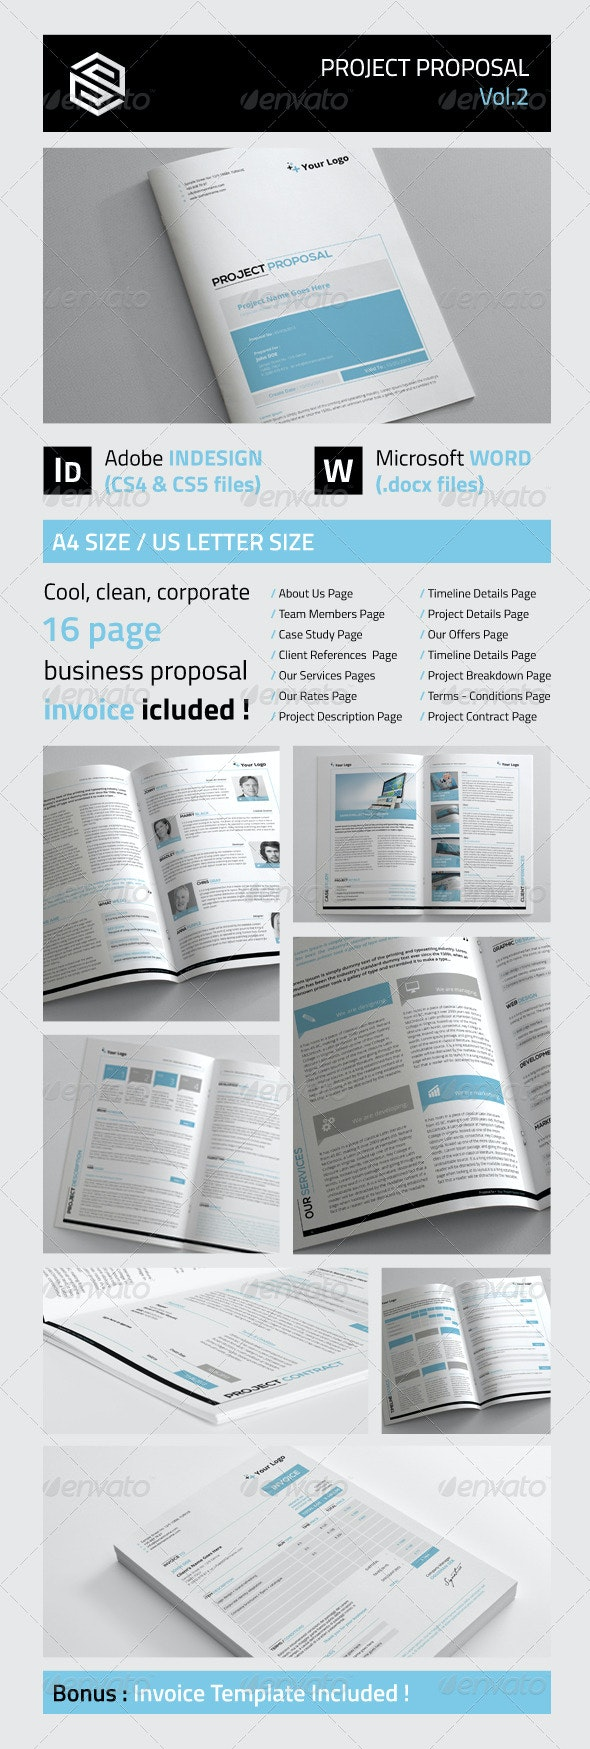 Project Proposal Vol2 - Proposals & Invoices Stationery